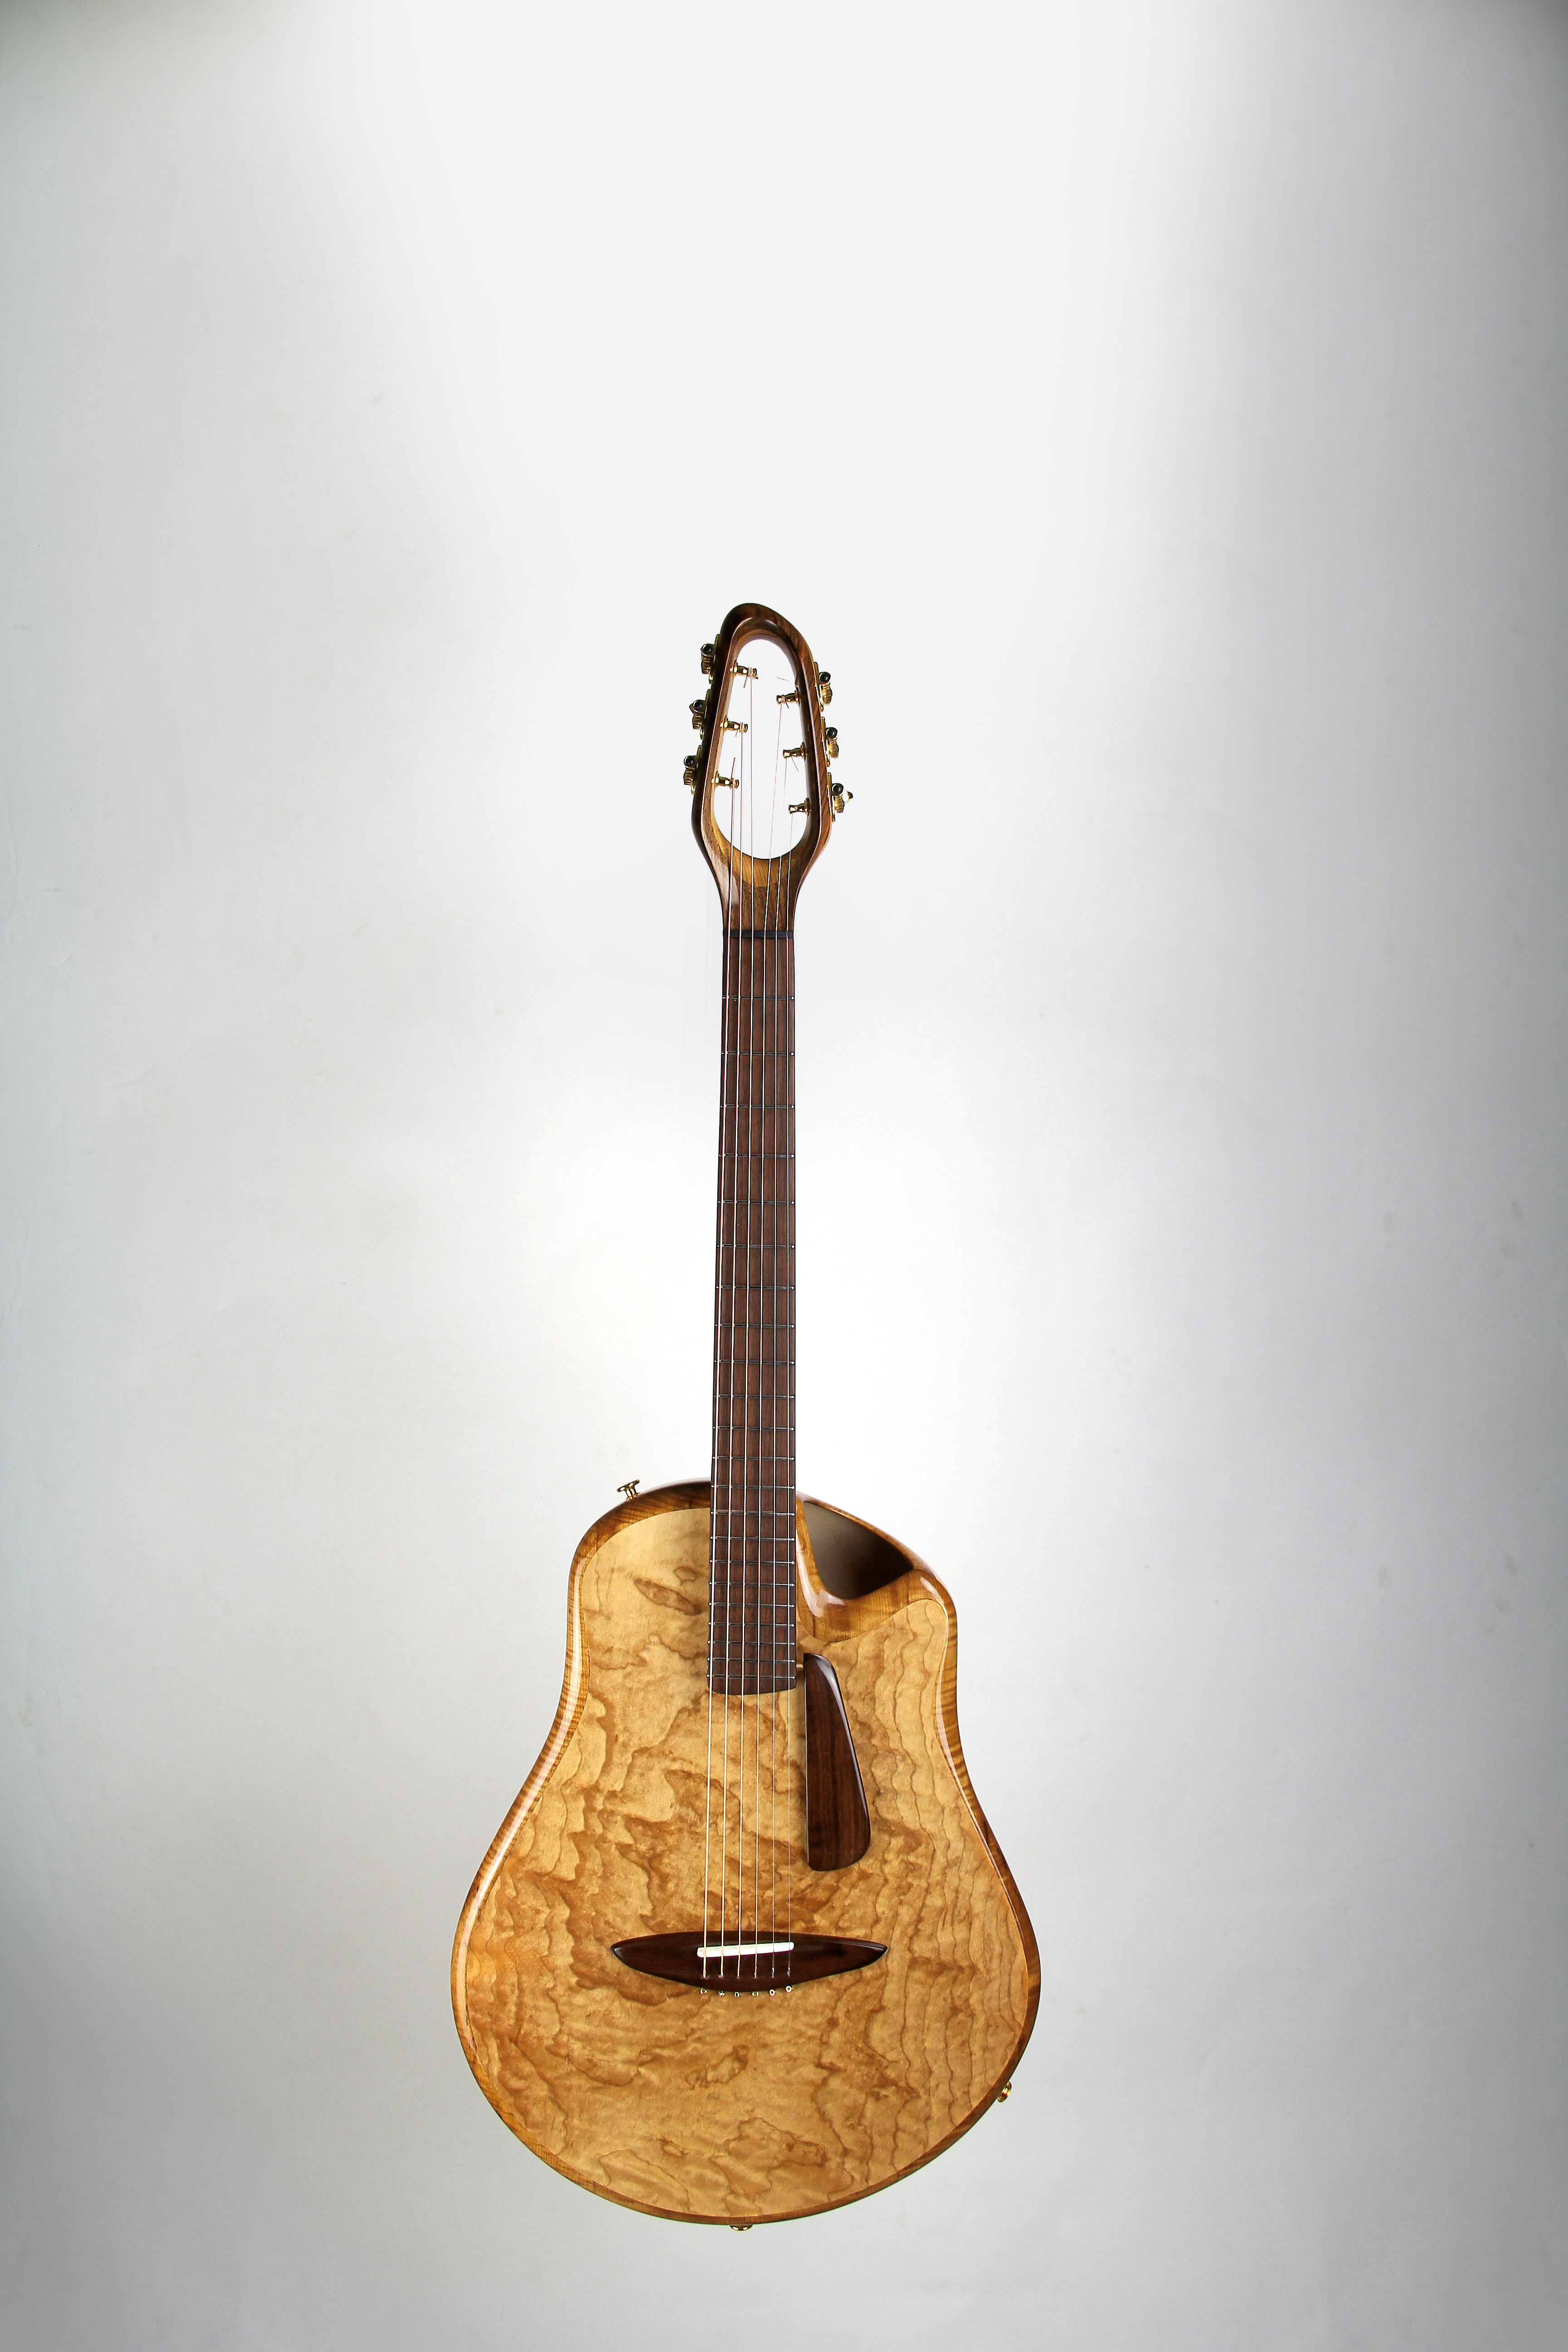 CannaGuitar with top from Sonoveneer flamed maple, fretboard and bridge from Sonowood walnut